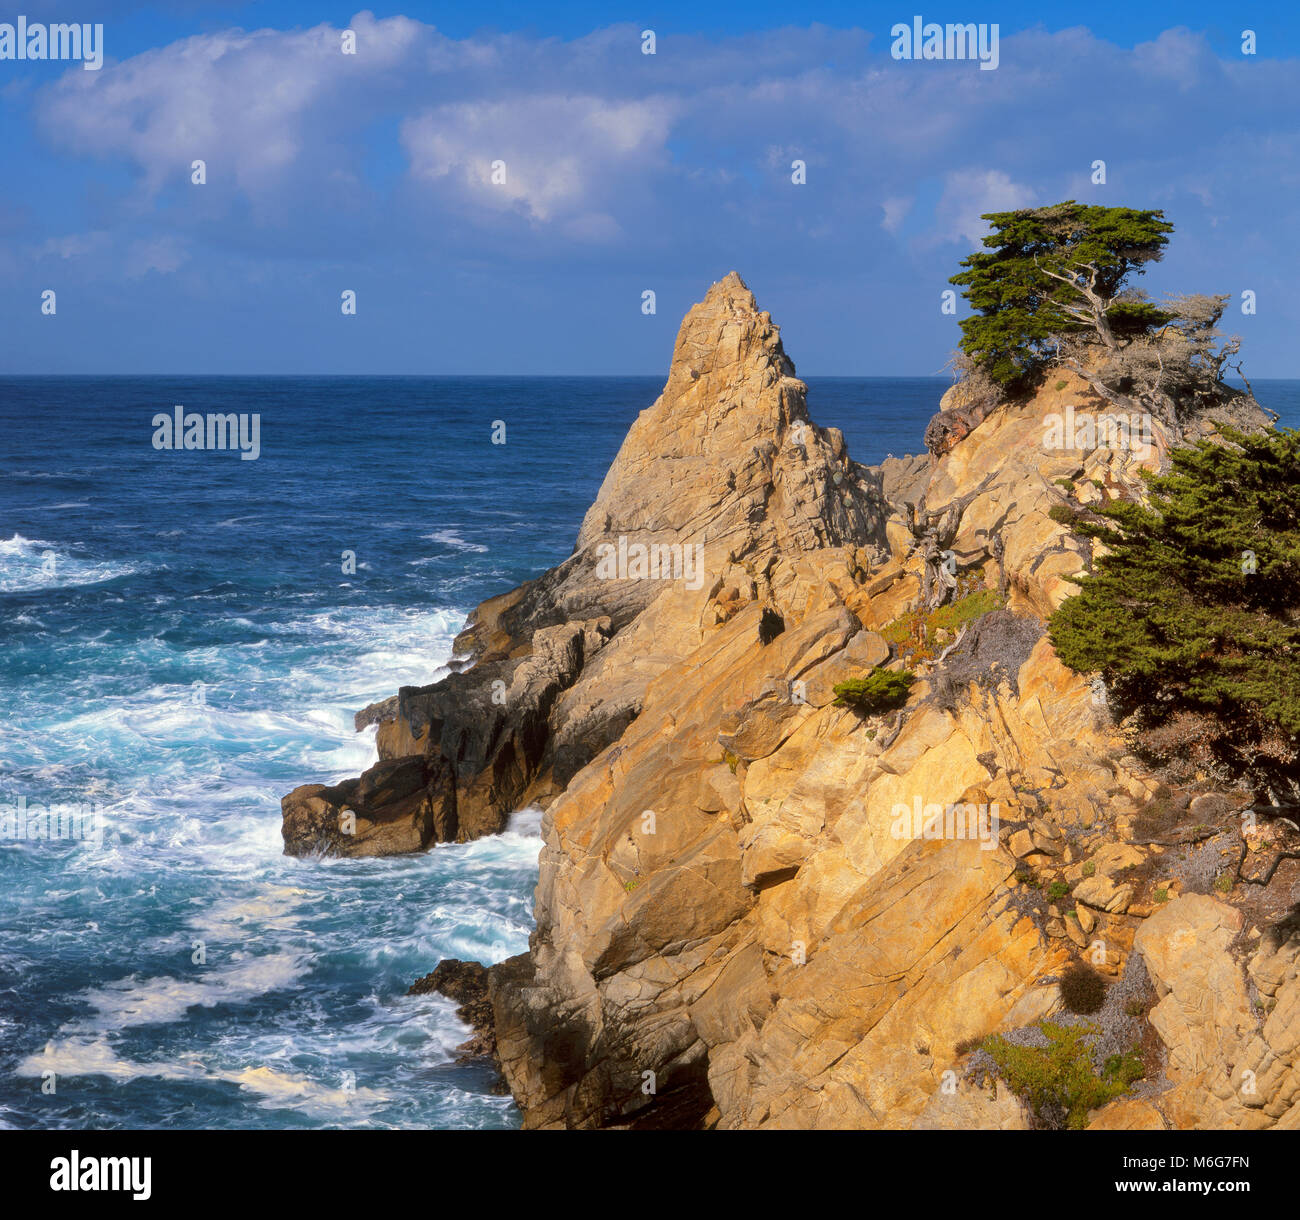 The Pinnacle, Point Lobos State Reserve, Big Sur, Monterey County, California - Stock Image